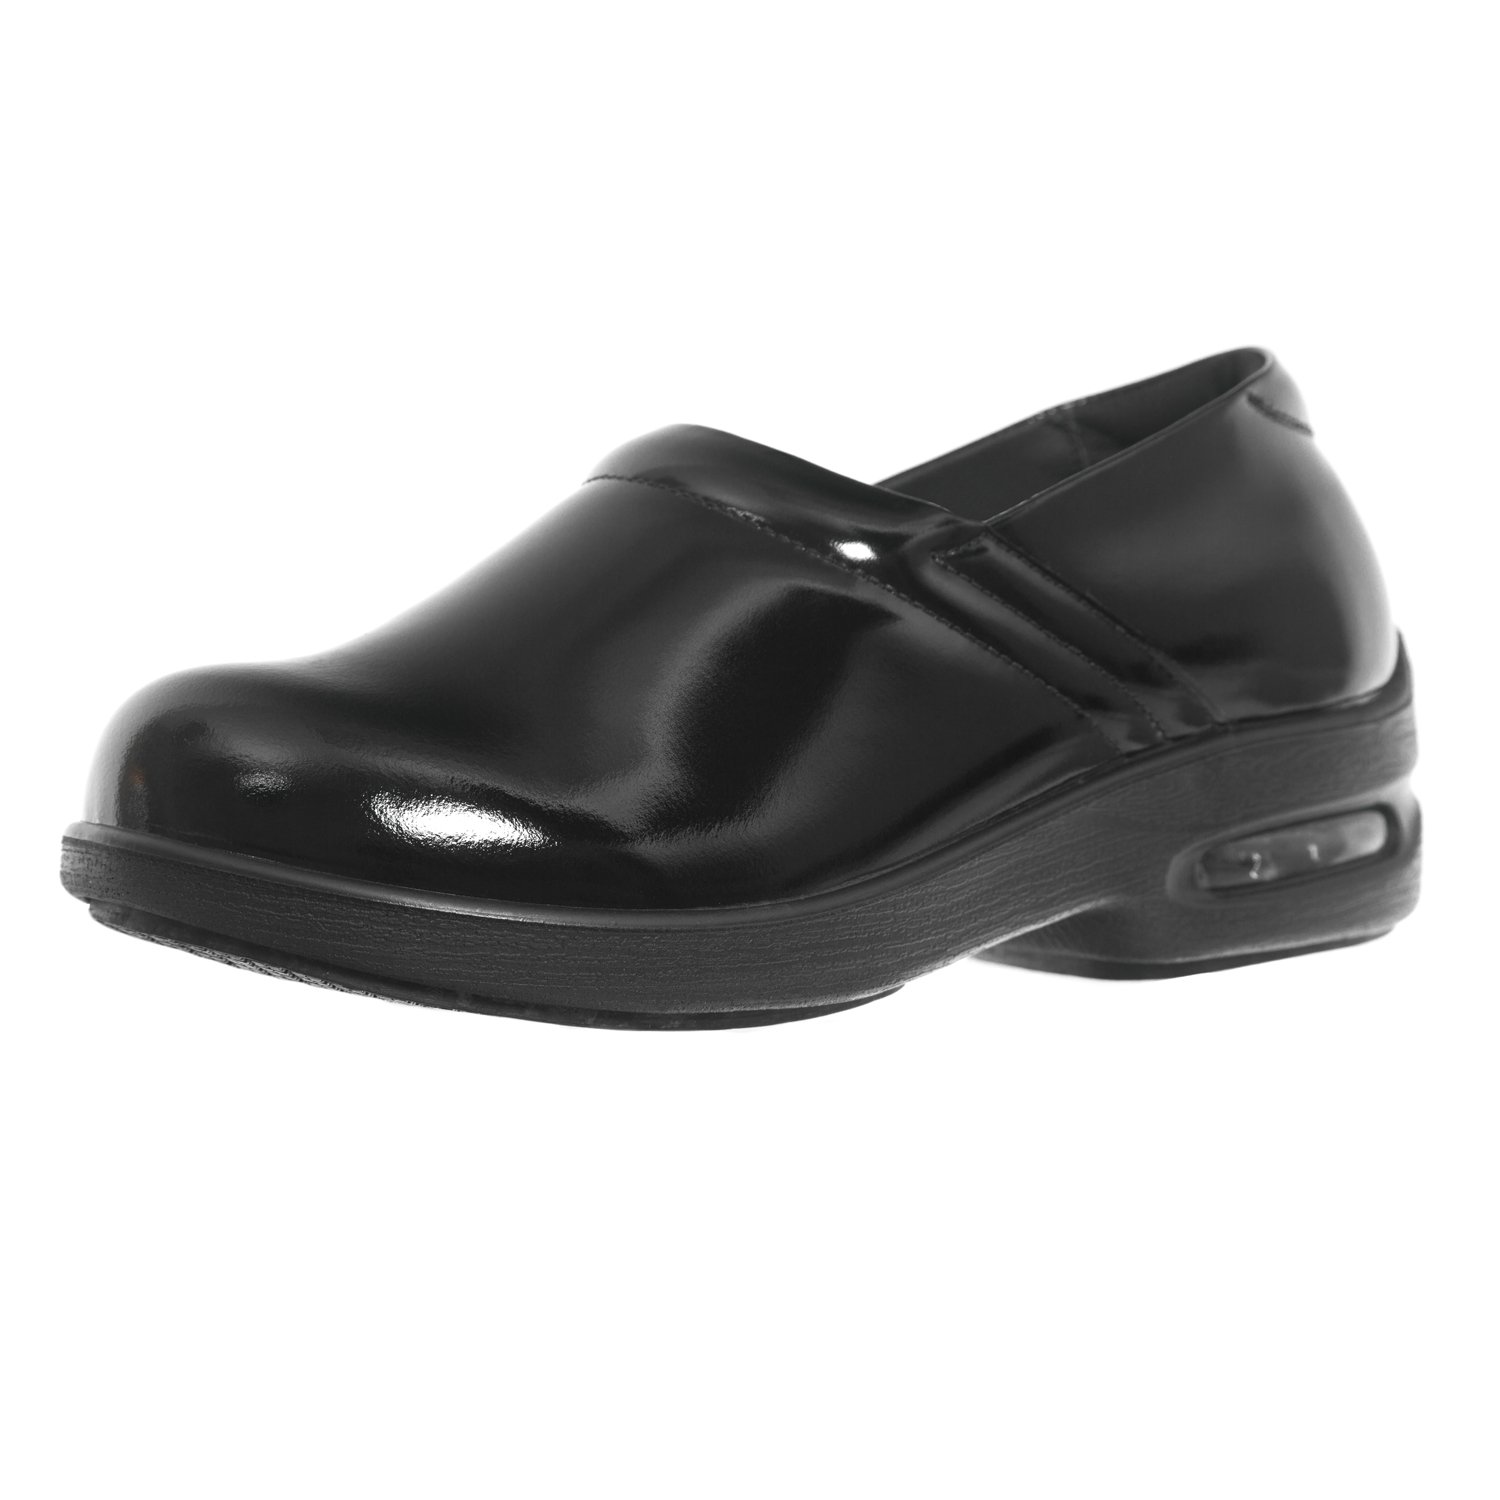 Shoes For Crews Women's Air Clog Leather Shoes 9071 Size 8 Black